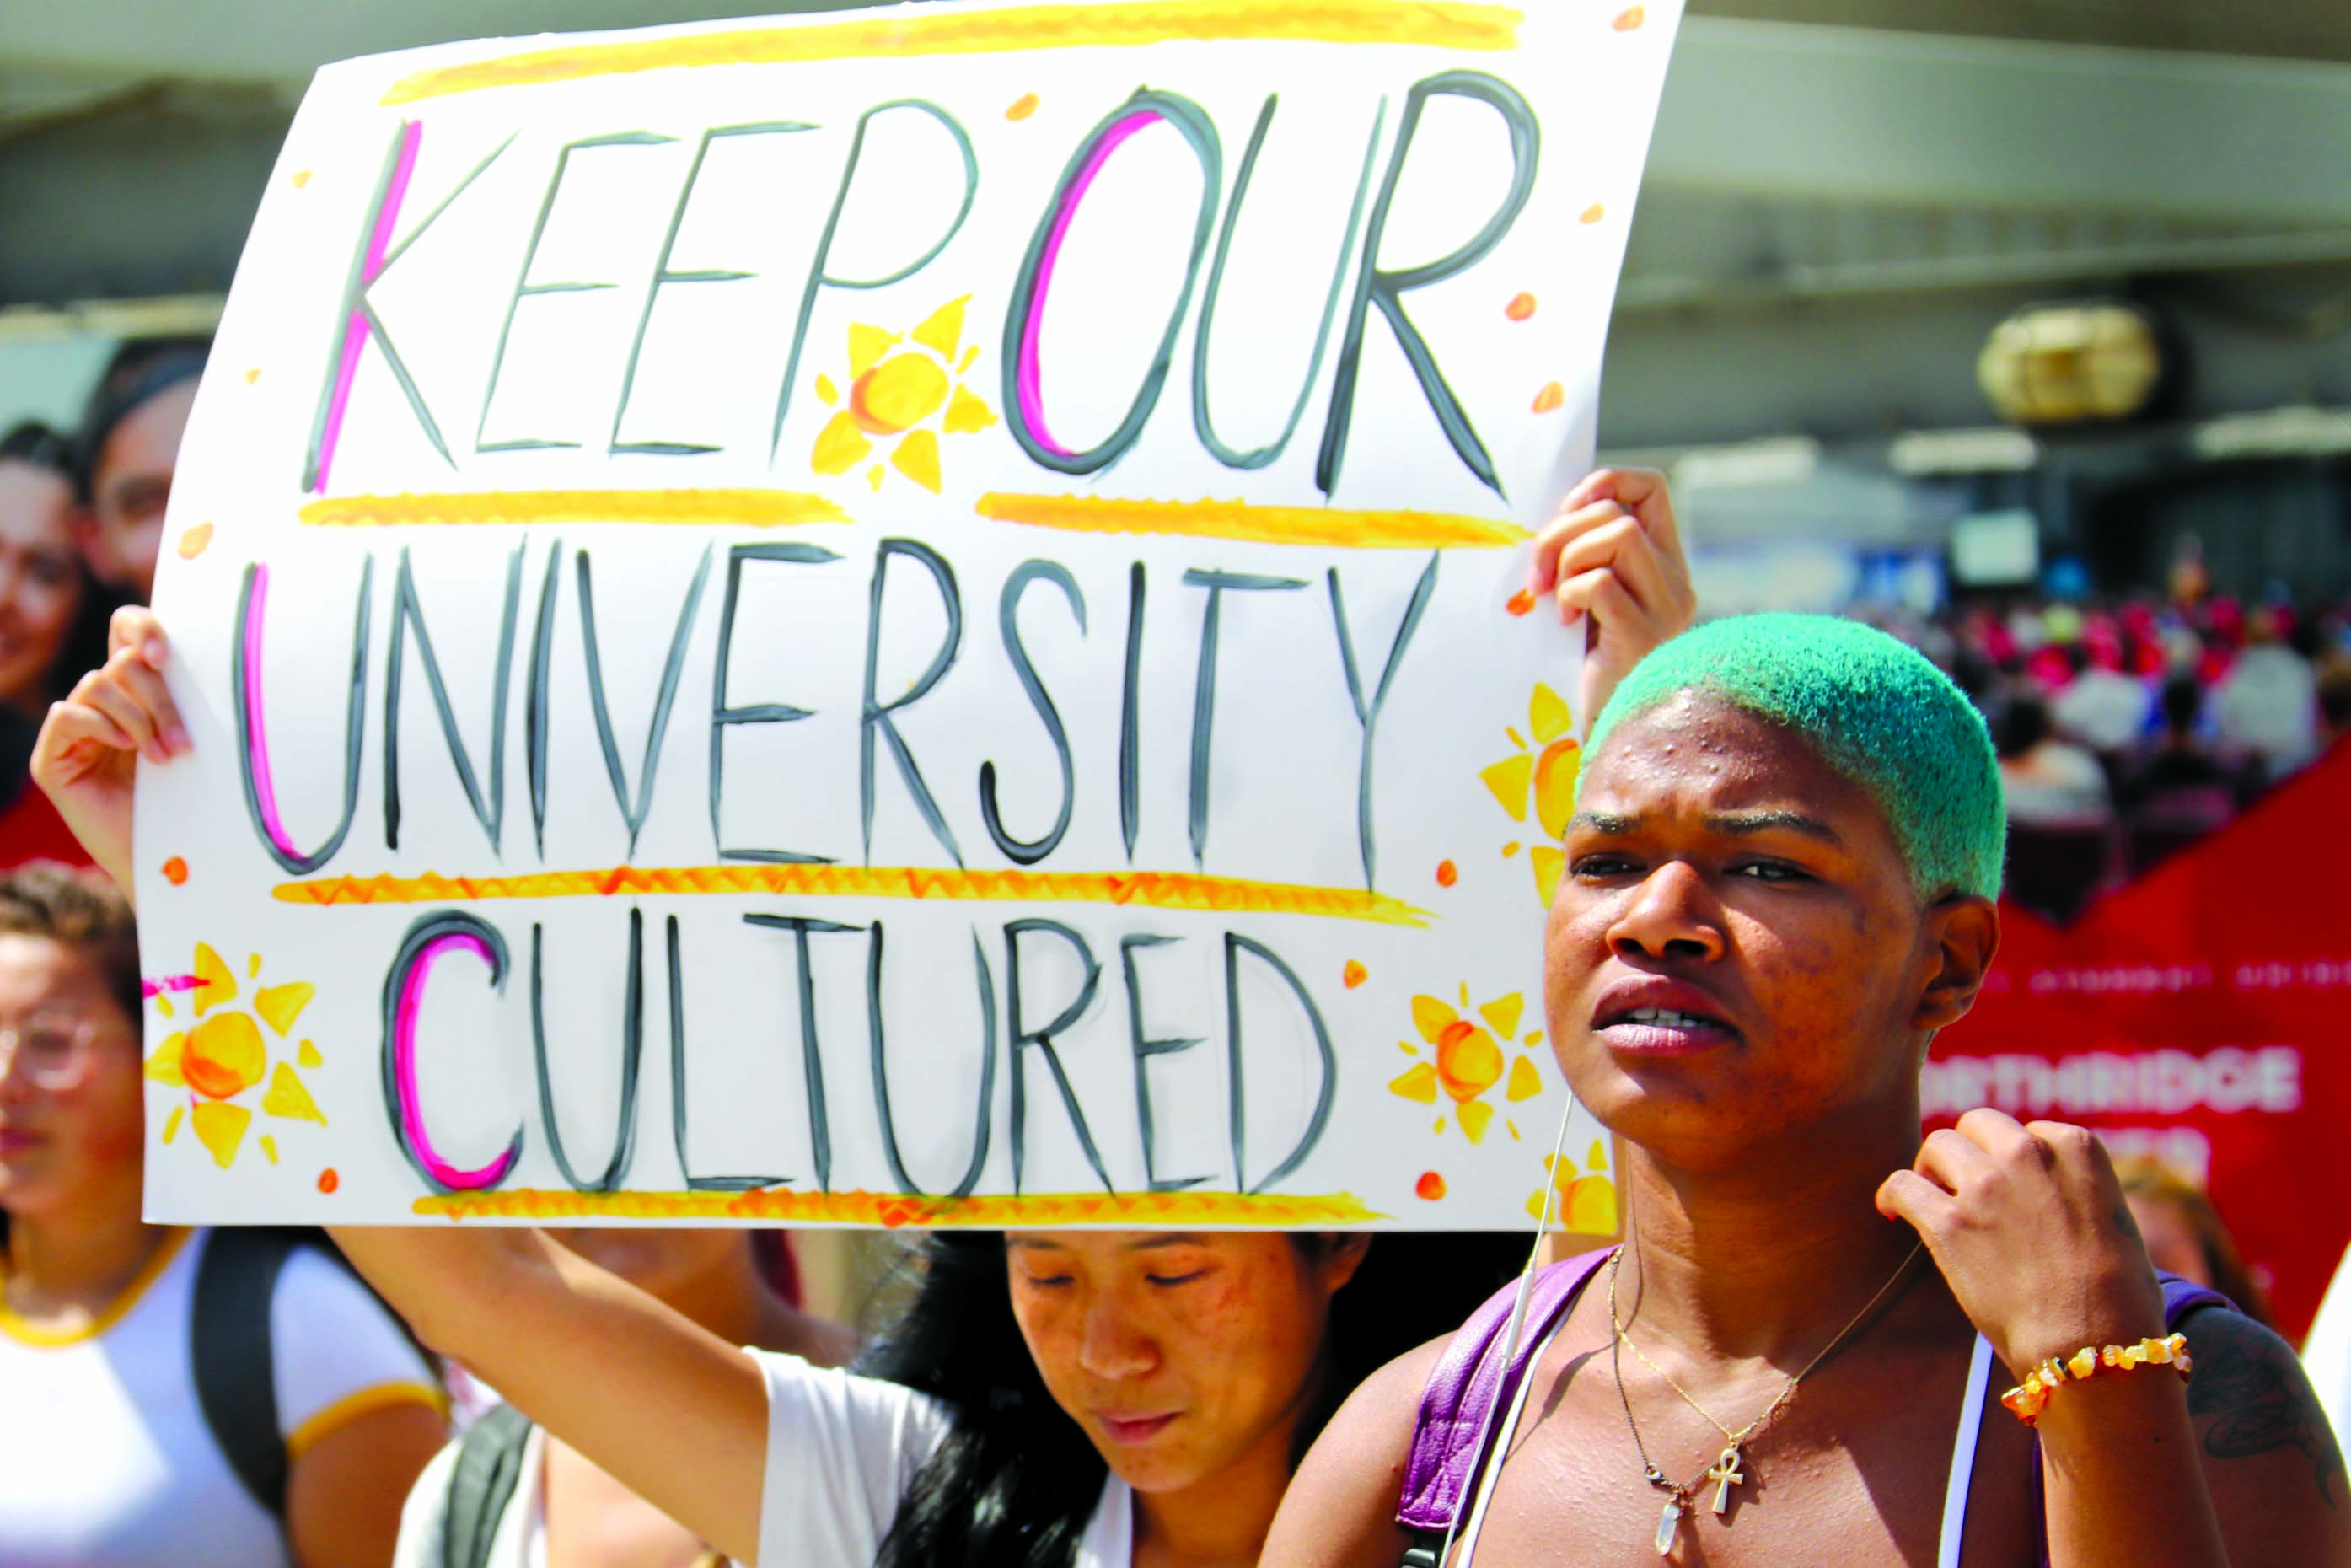 Students protested about EO 1100 on Wednesday. Photo credit: Marja Ziemer